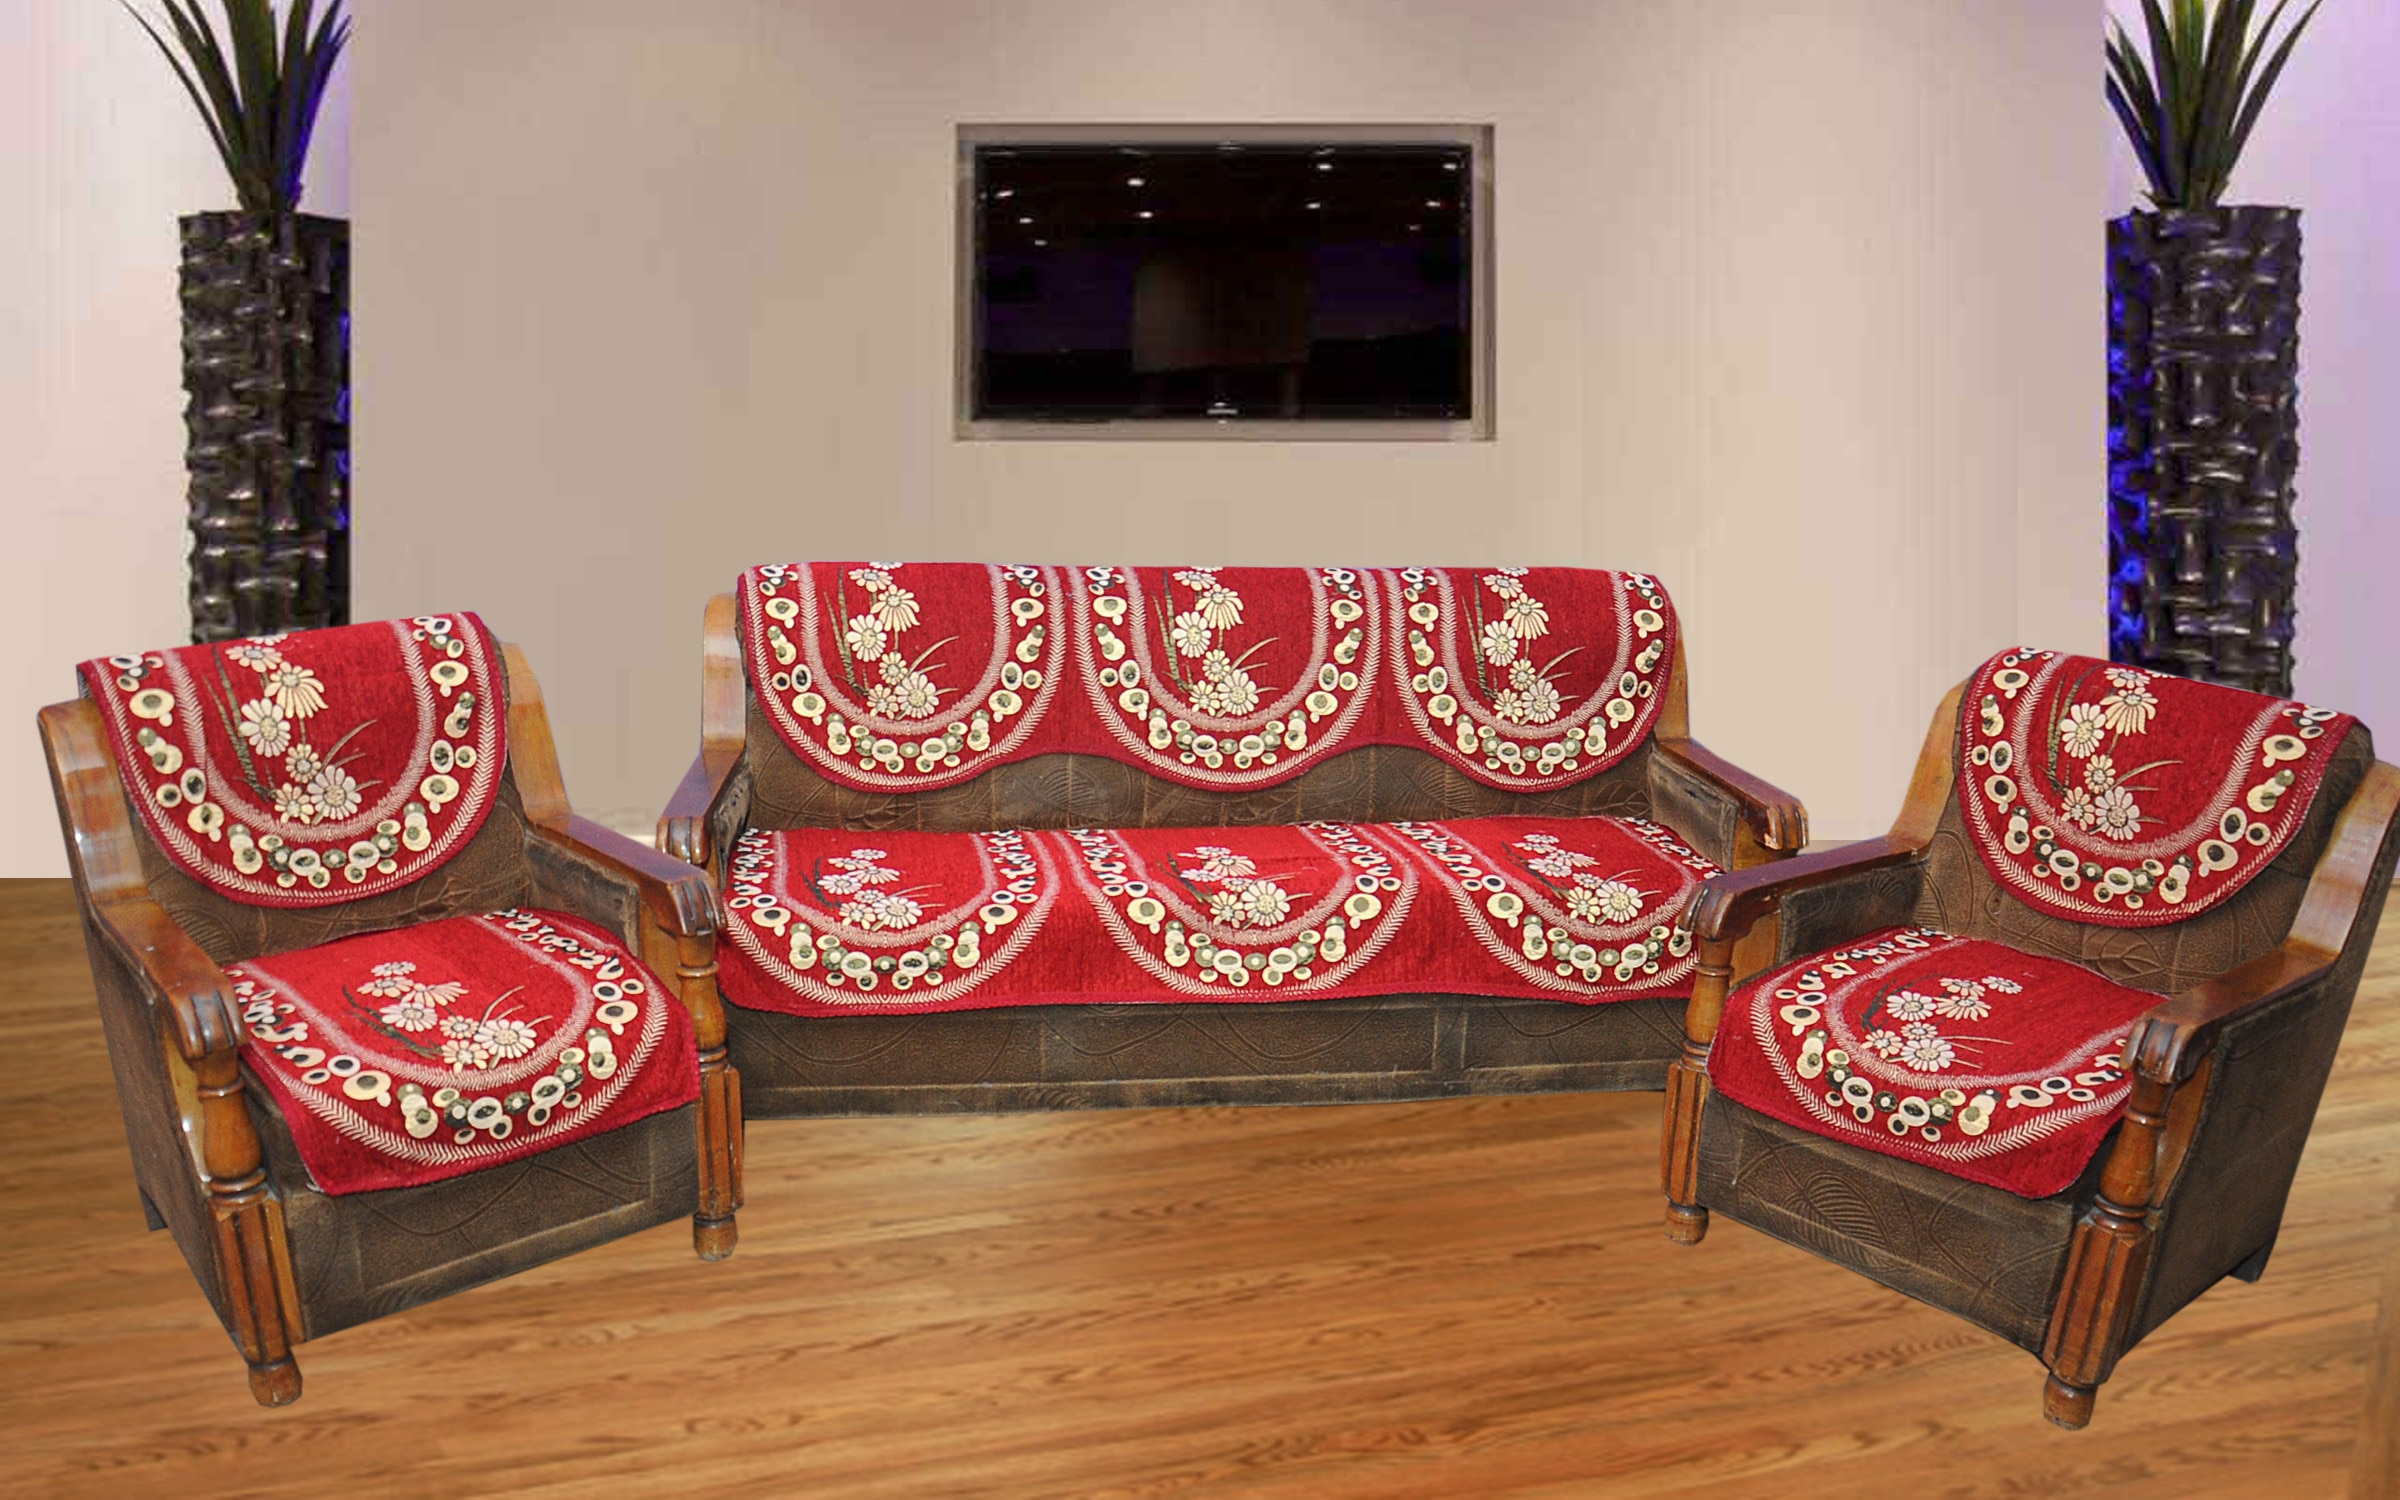 sofa covers in chennai 7 ft bean bag covering we are the distribu next door custom update image